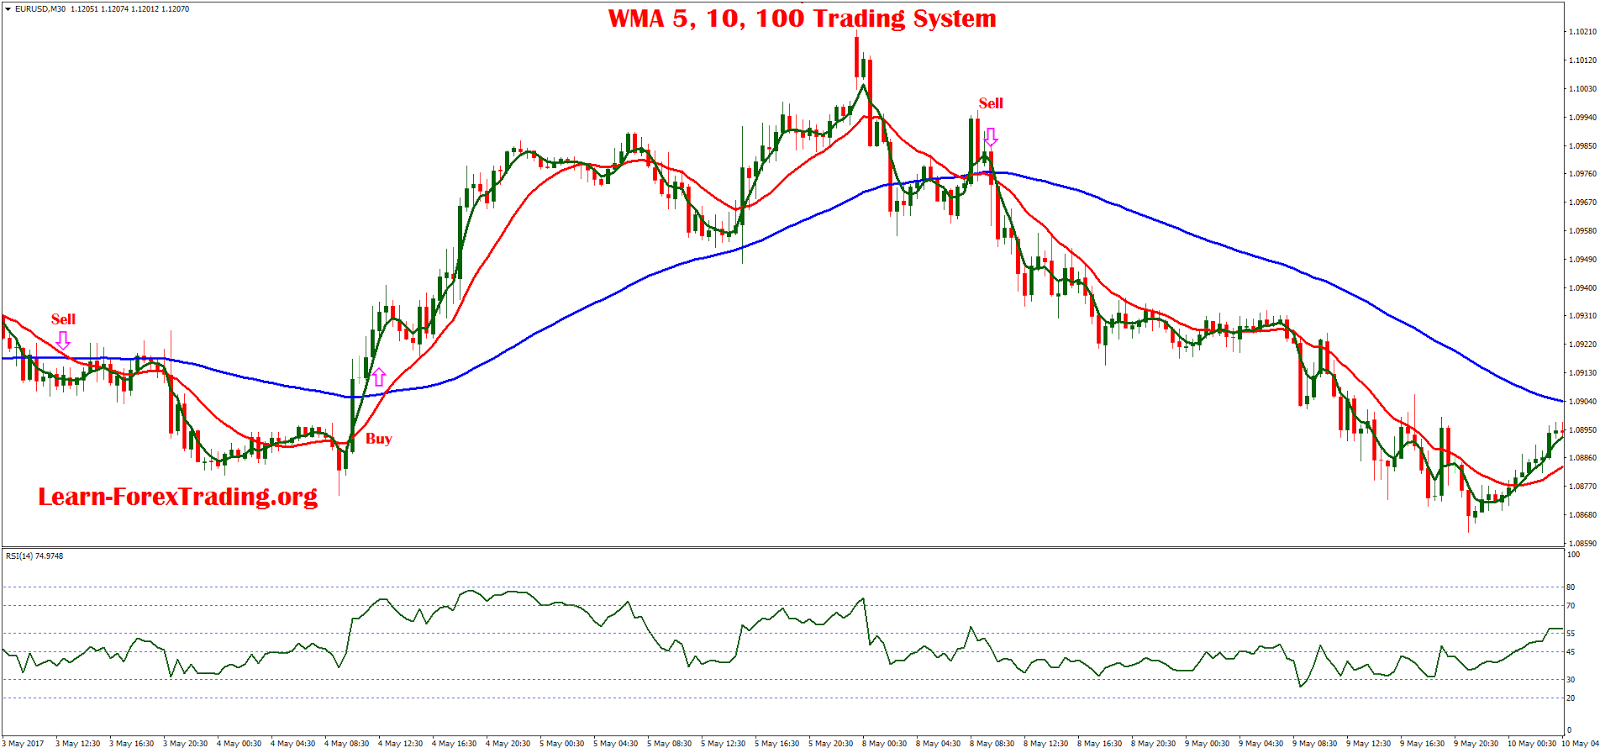 Wma trading system